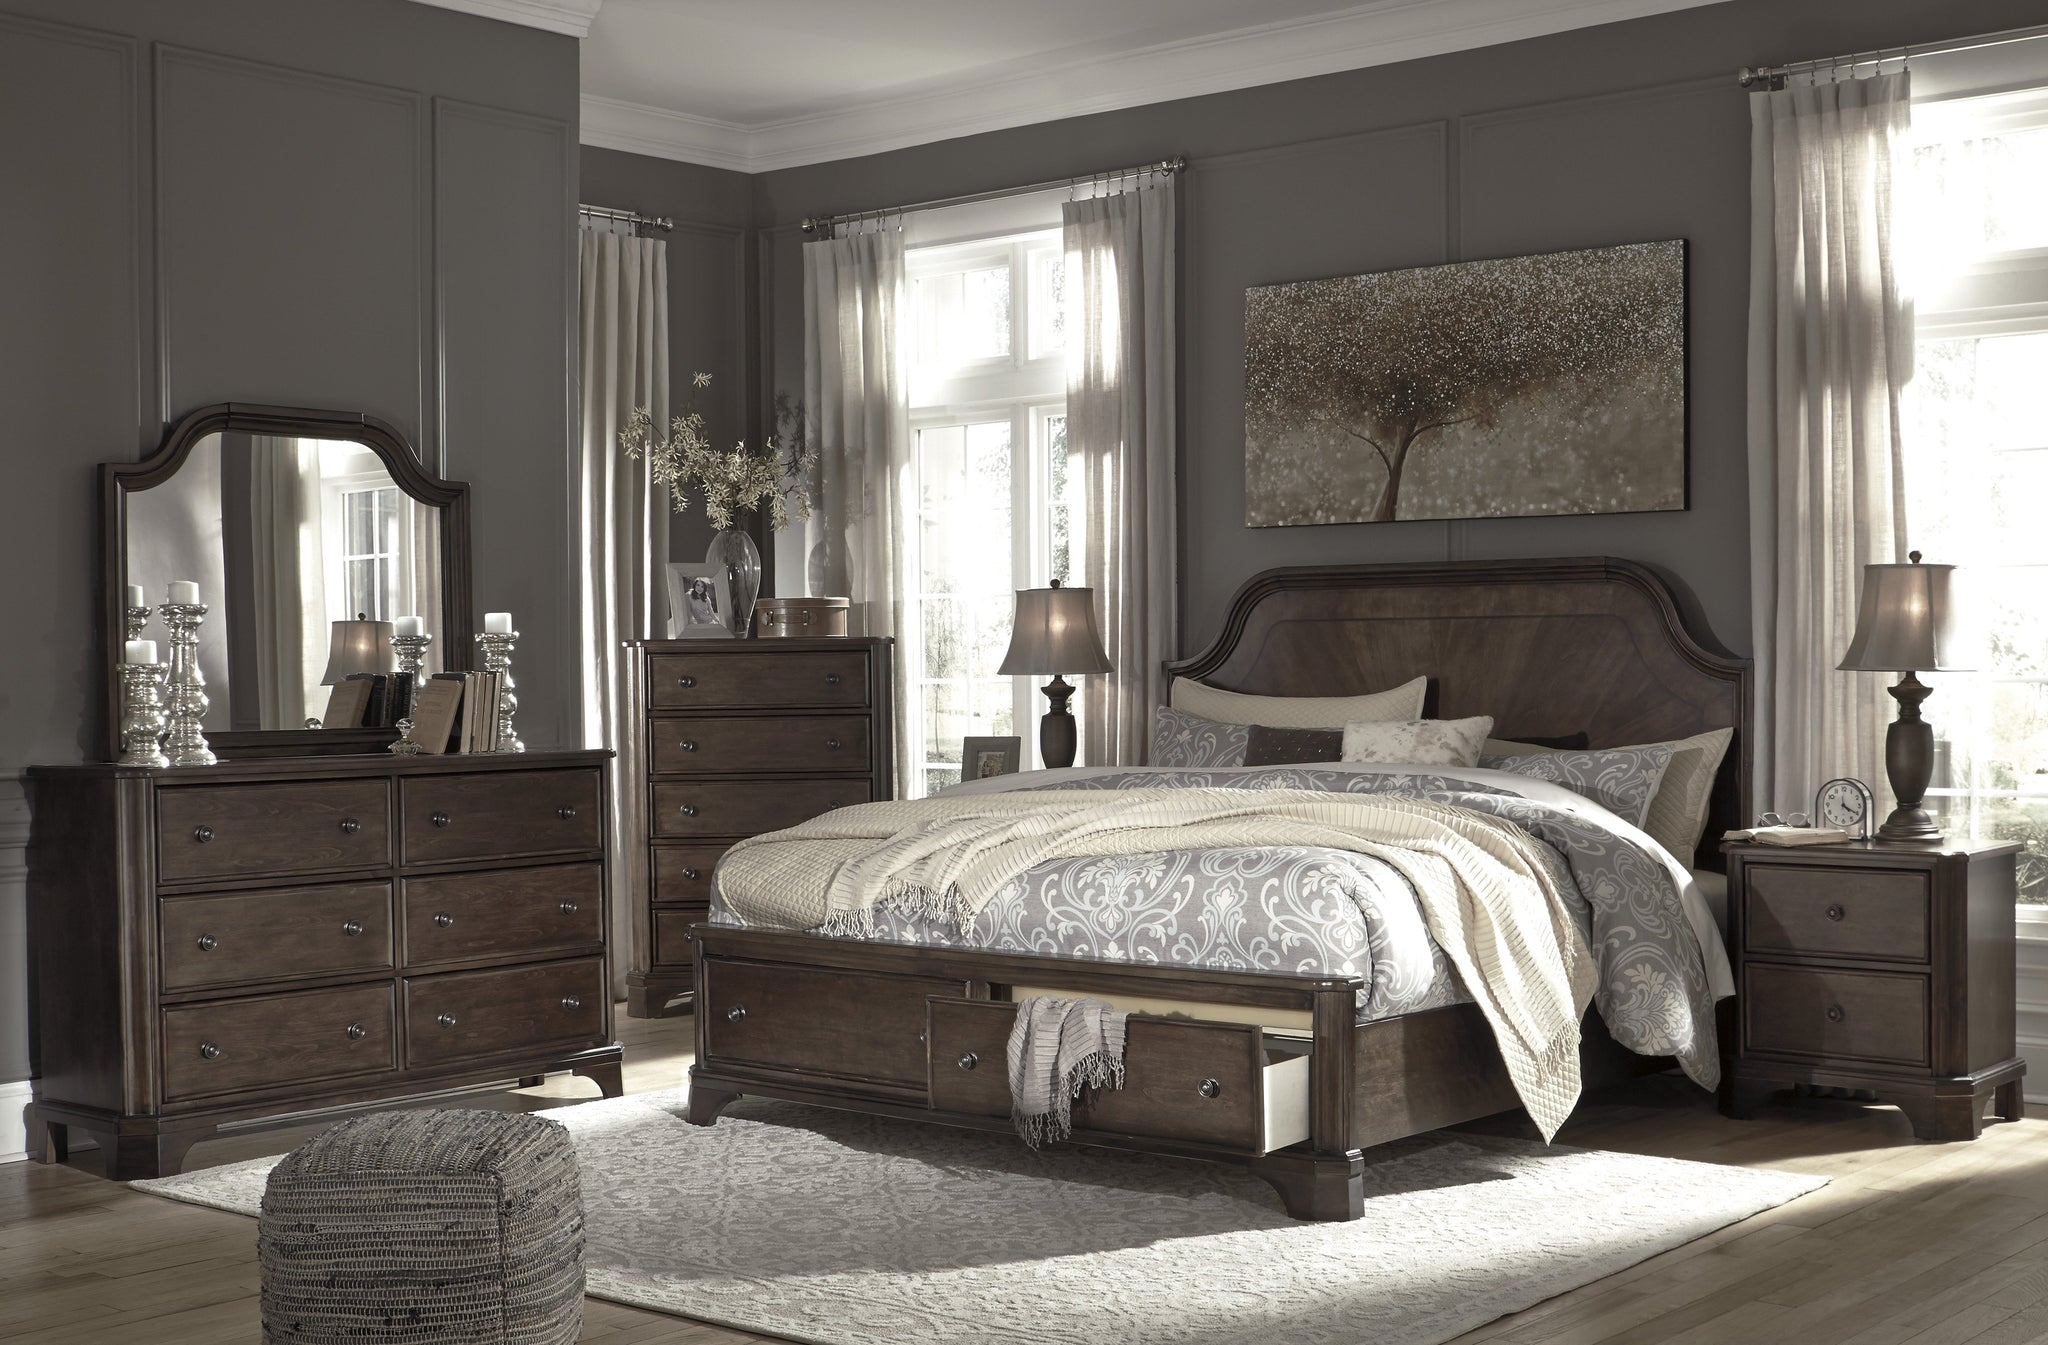 Adinton Signature Design 5-Piece Bedroom Set image